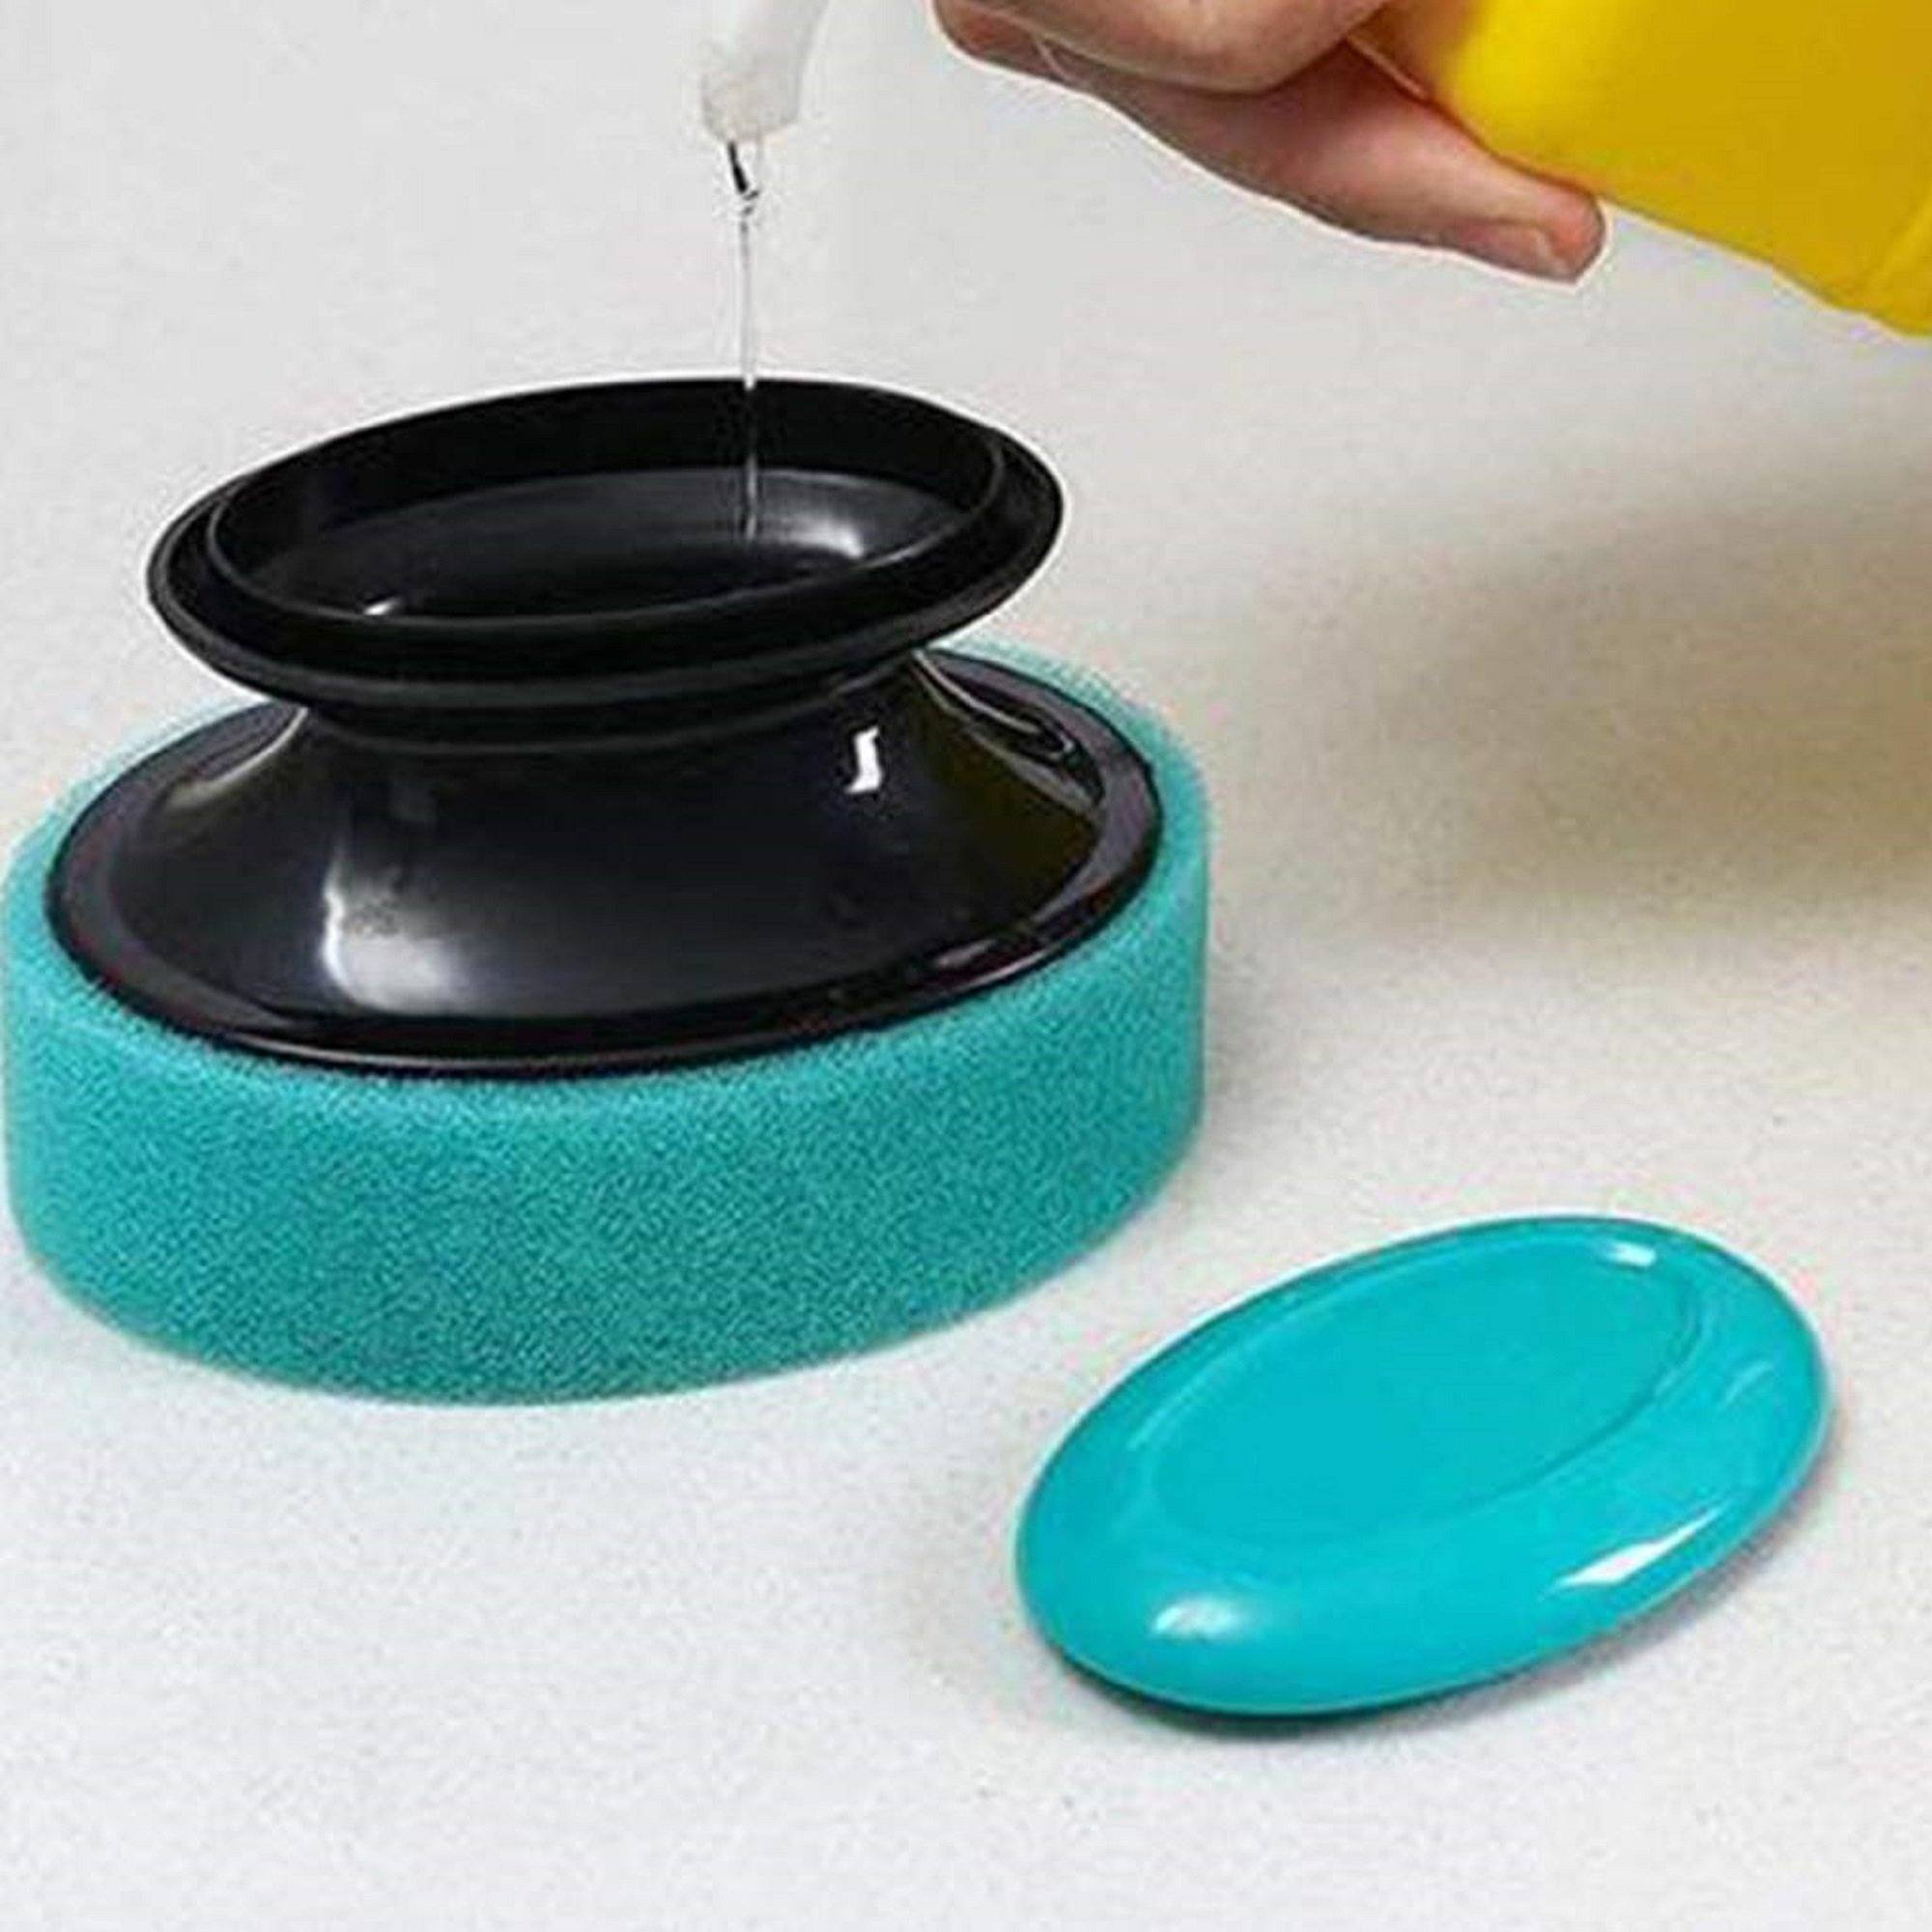 Creative Countertop Sponge Brush